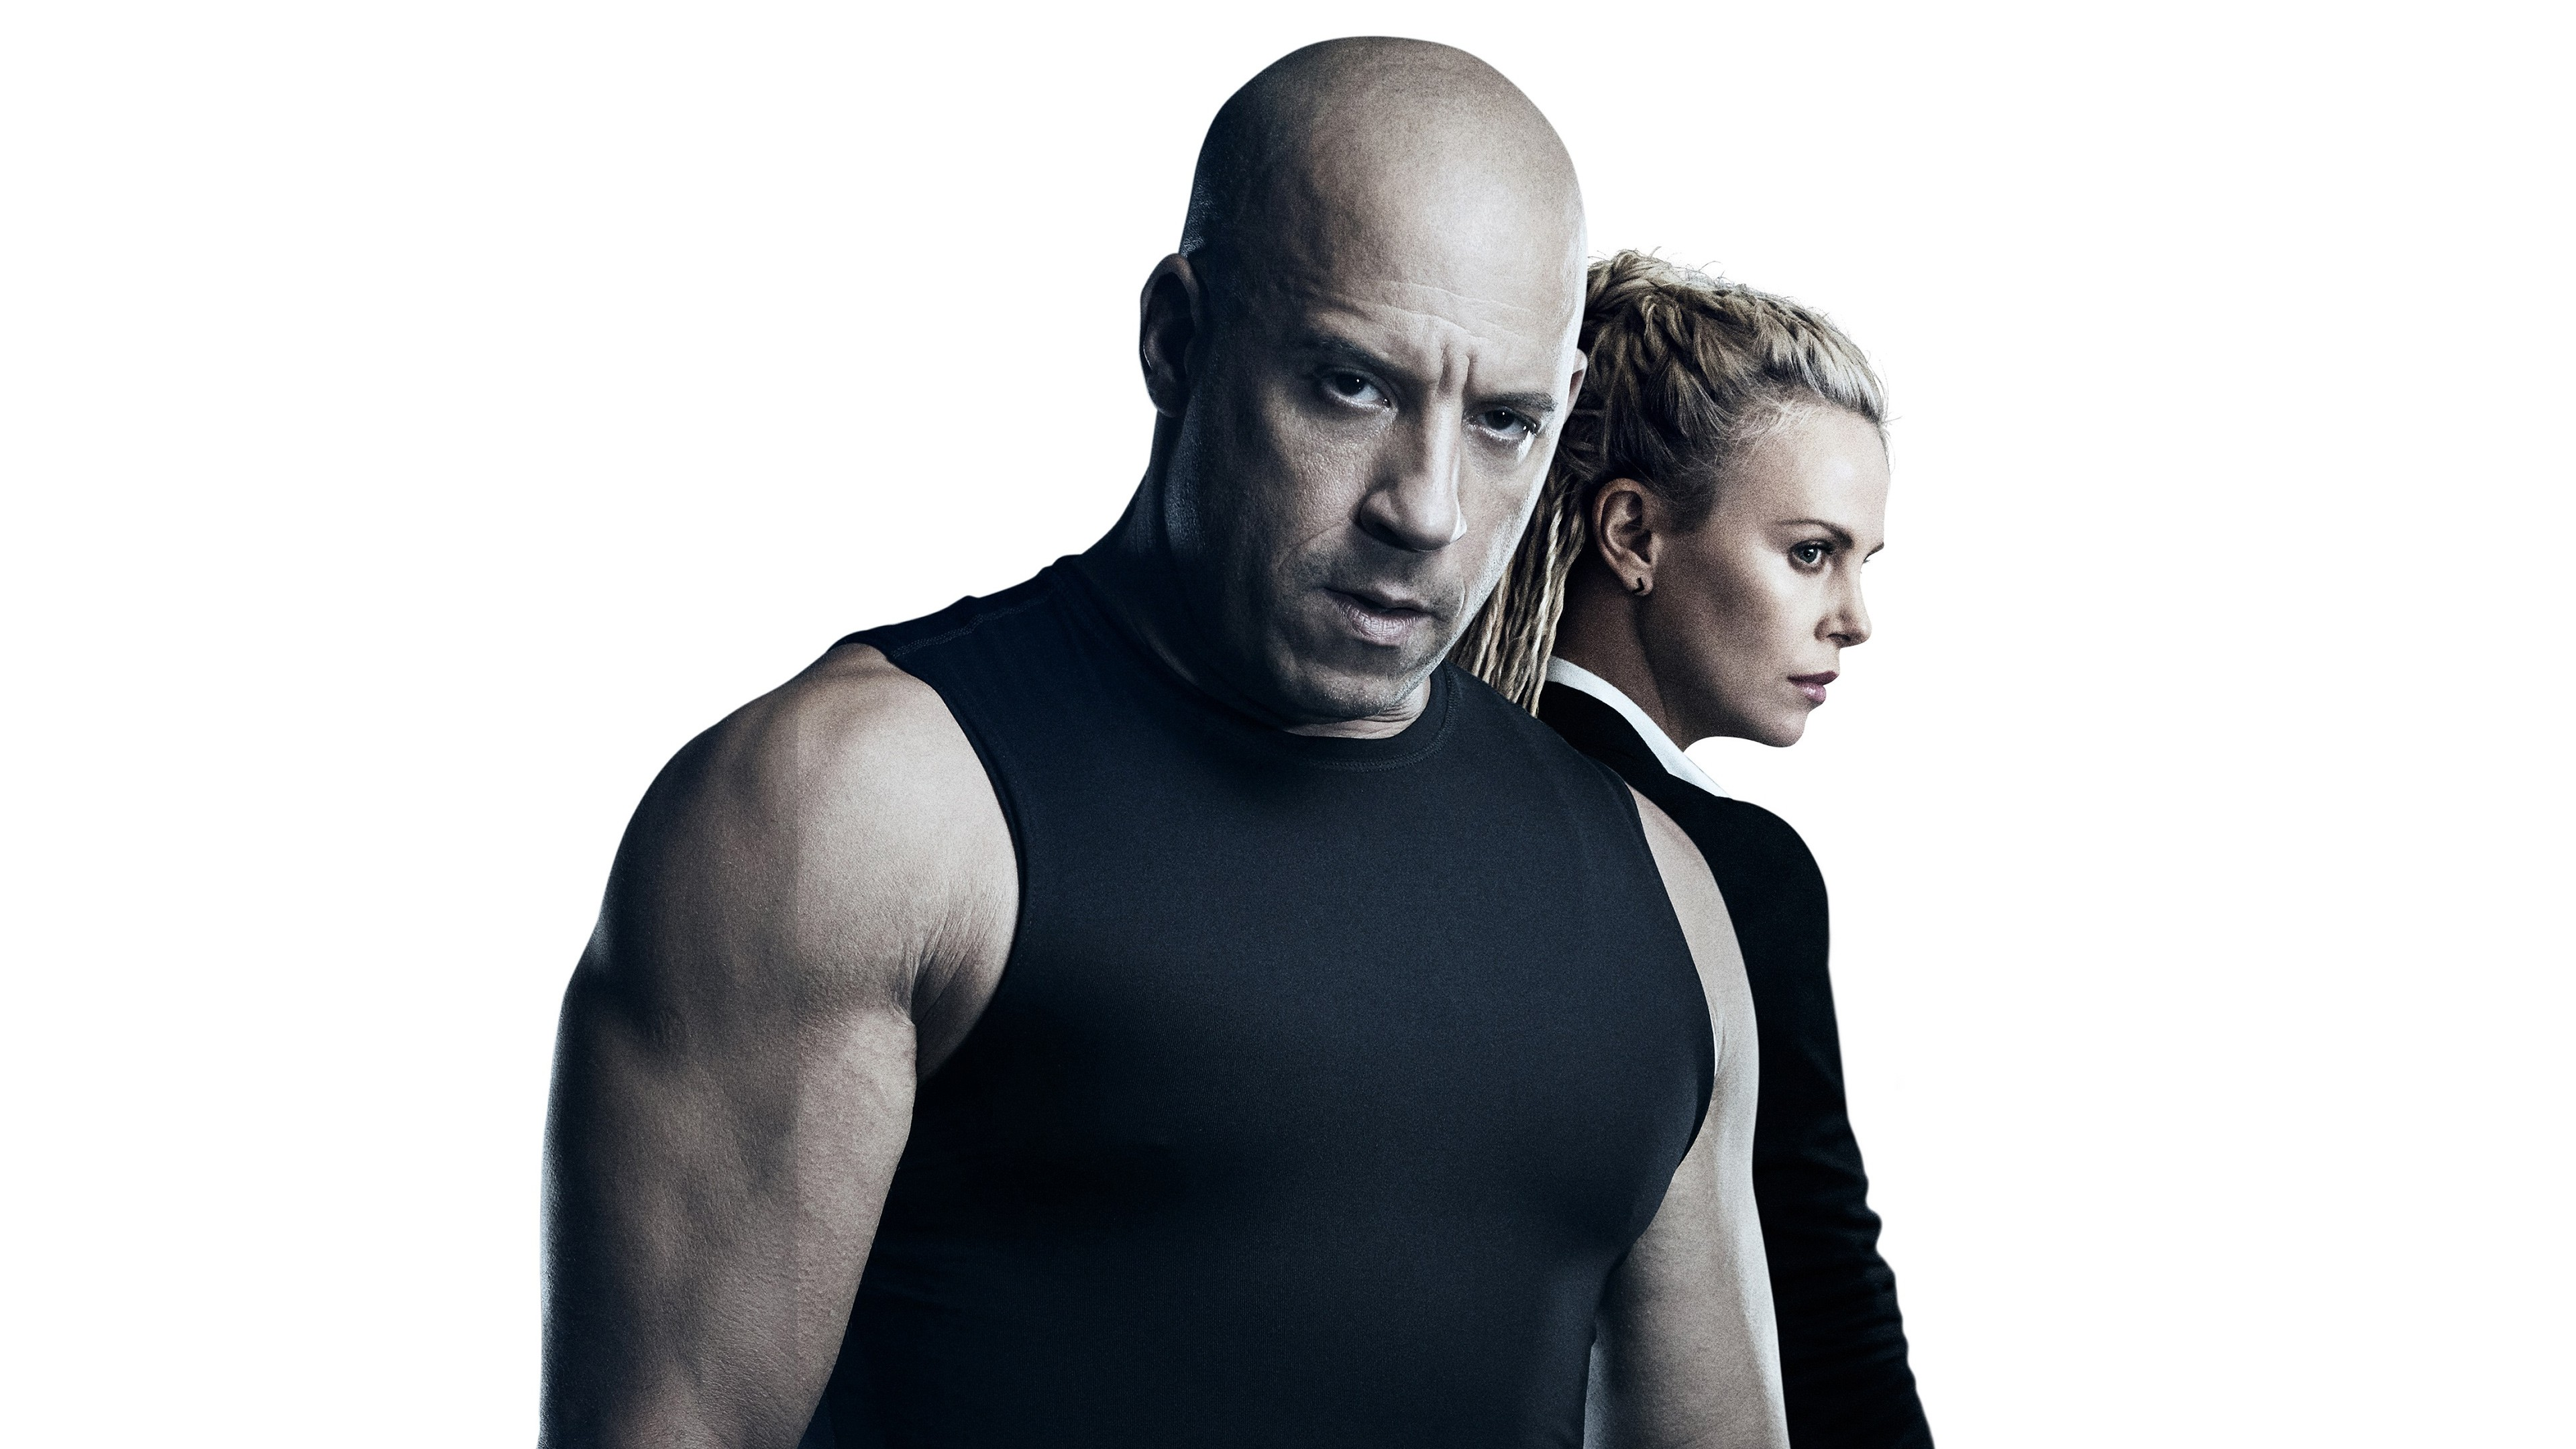 charlize theron vin diesel the fate of the furious 1536401960 - Charlize Theron Vin Diesel The Fate of the Furious - vin diesel wallpapers, movies wallpapers, fast and furious wallpapers, fast 8 wallpapers, 2017 movies wallpapers